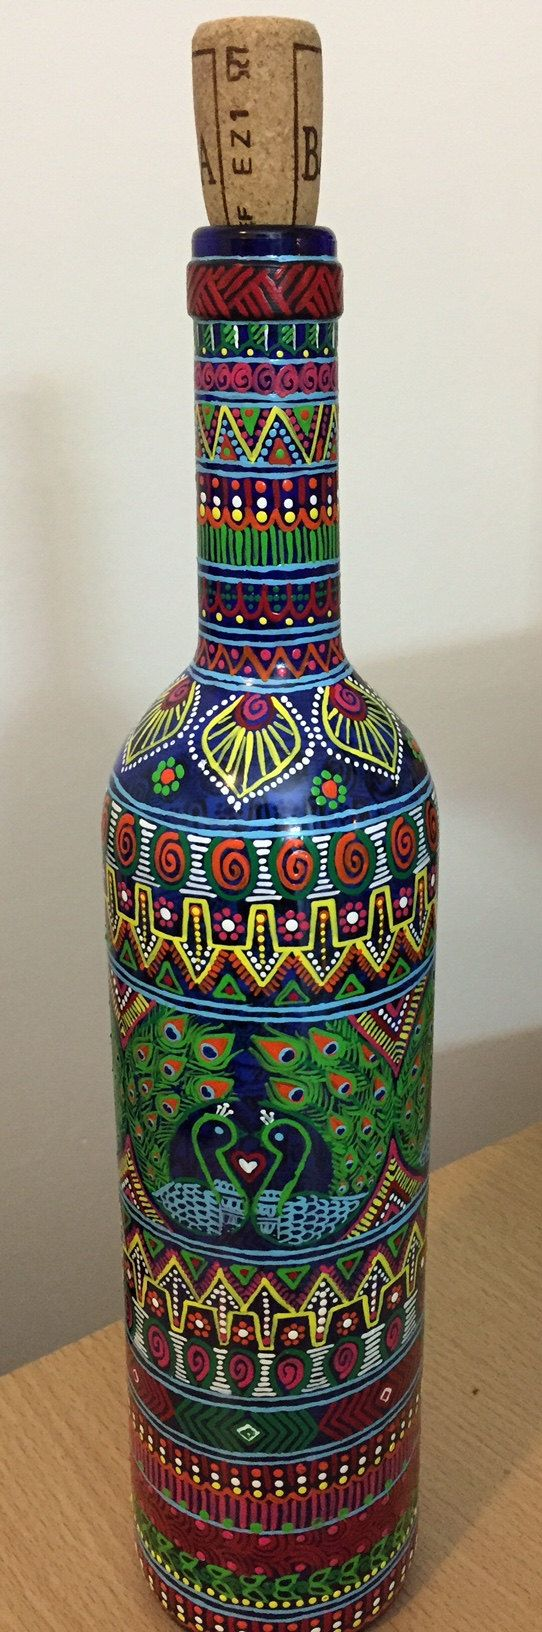 Peacock painting on bottle 75 arts and crafts for How to paint bottles with acrylic